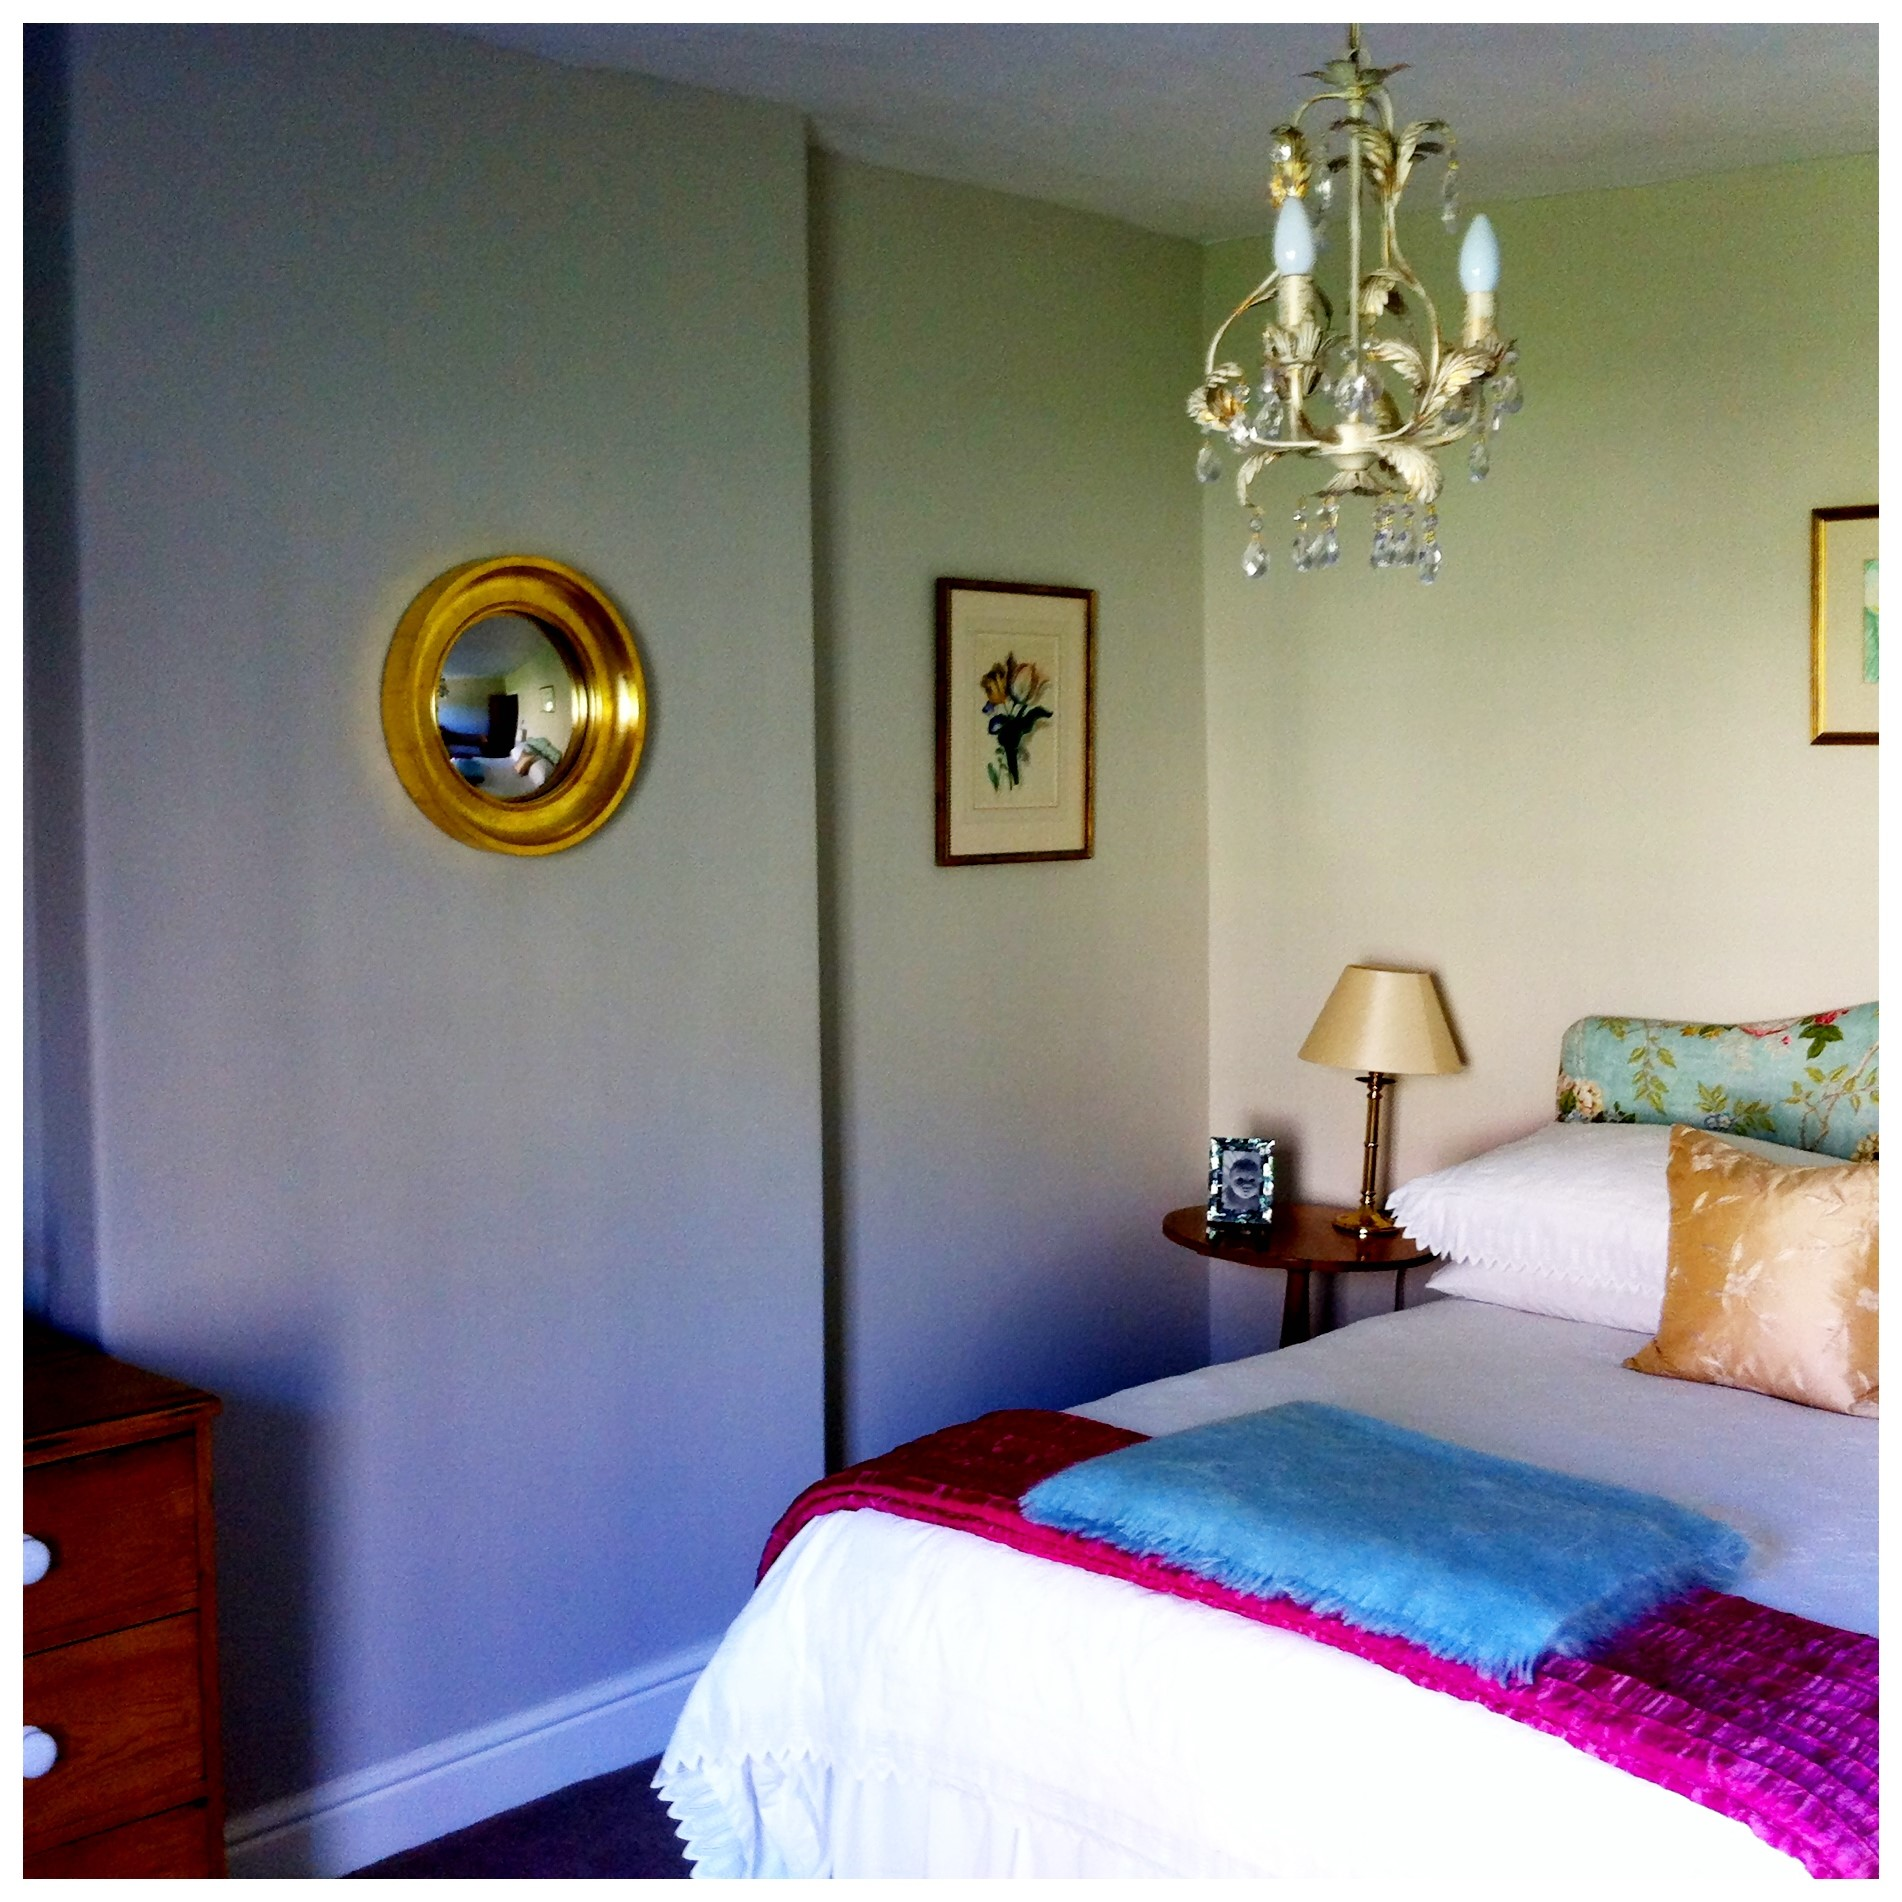 decorative convex mirror with gold frame hanging in a bedroom image